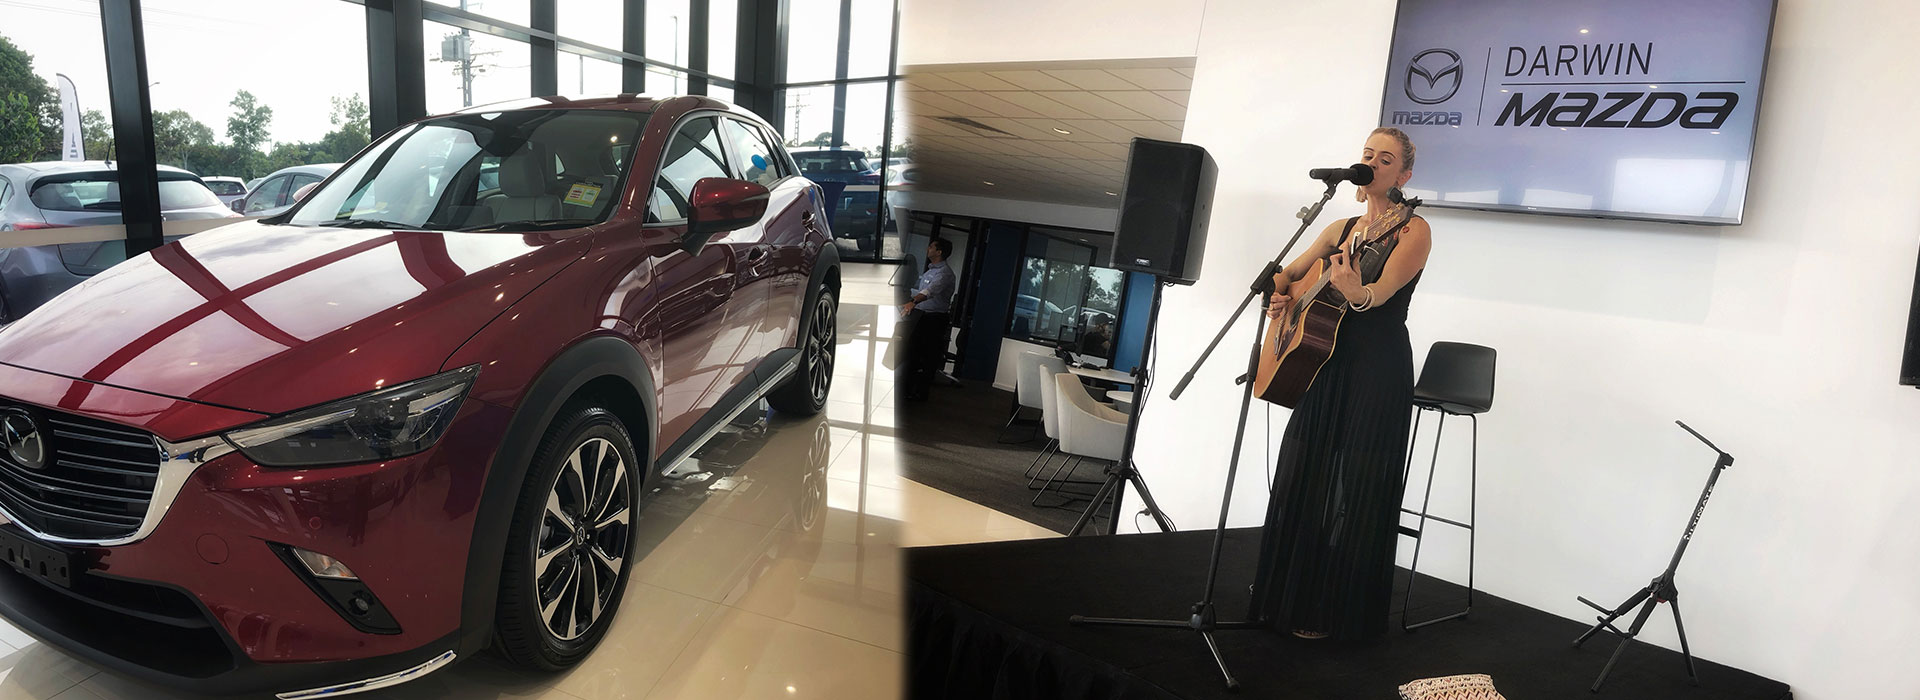 bespoke-mazda-facility-launch-2